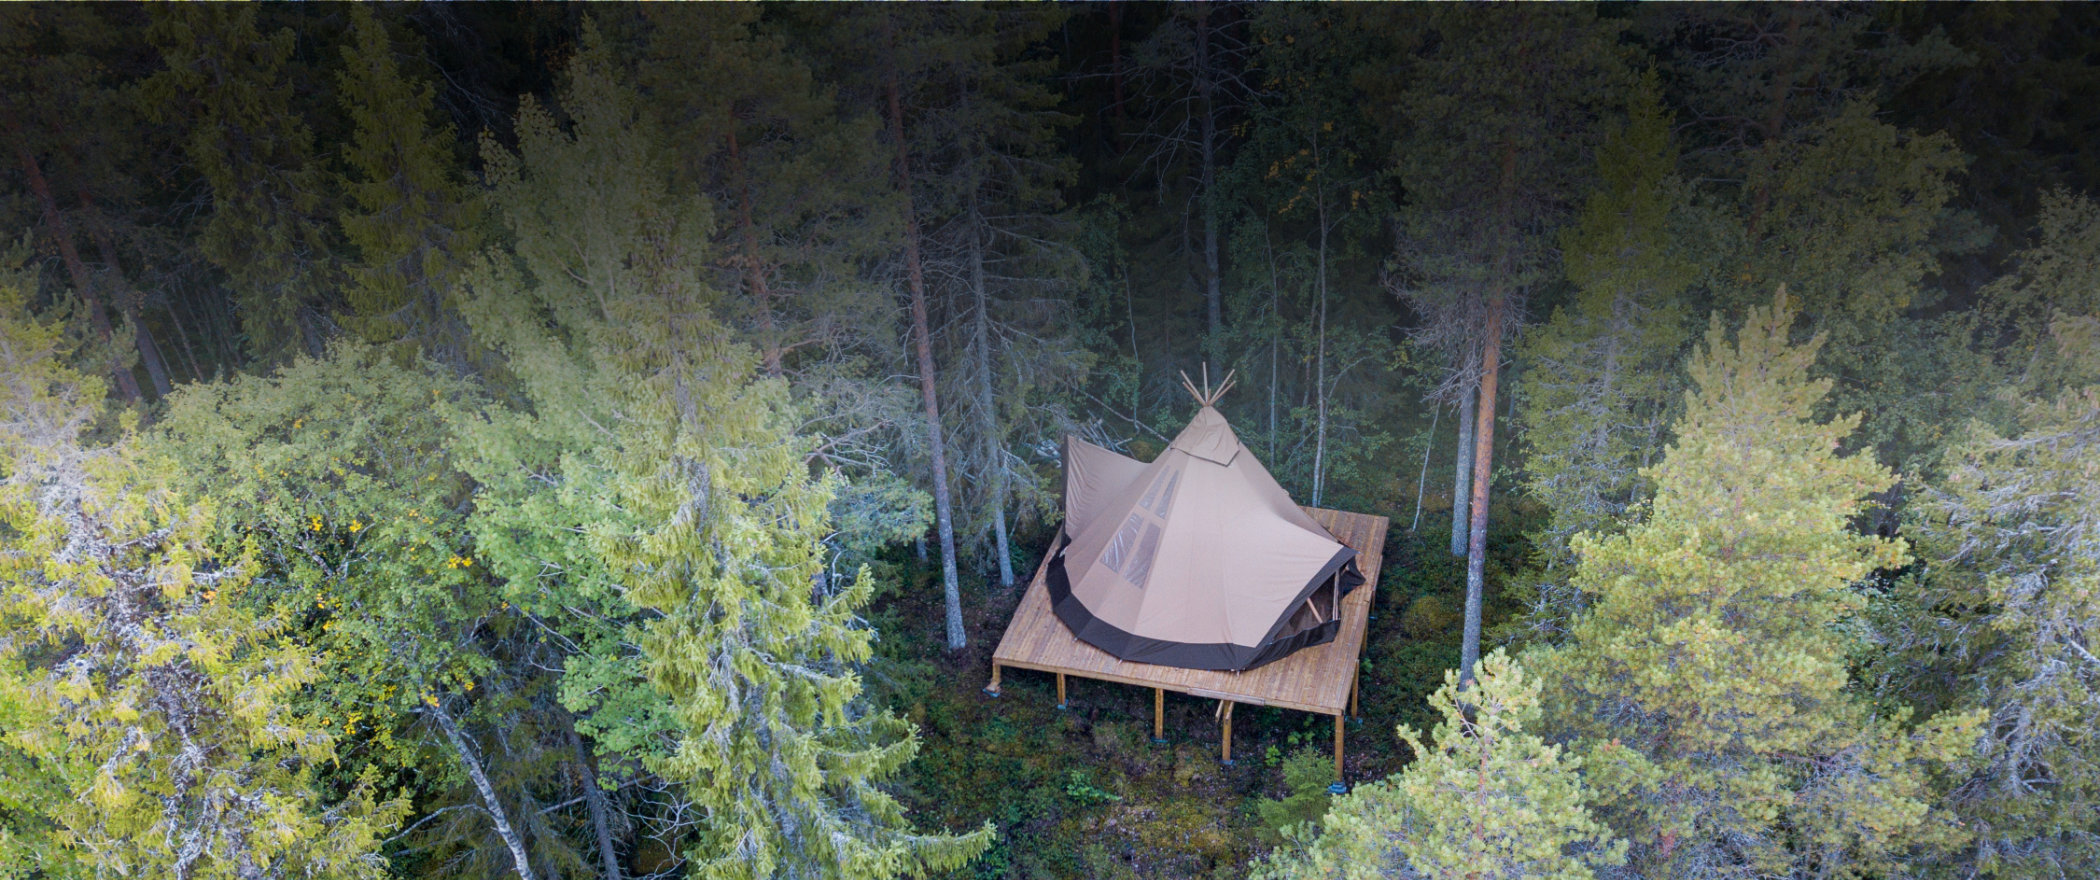 The Nordic tipi Aurum 33 offers a spacious and glamorous glamping tent with unparalleled design